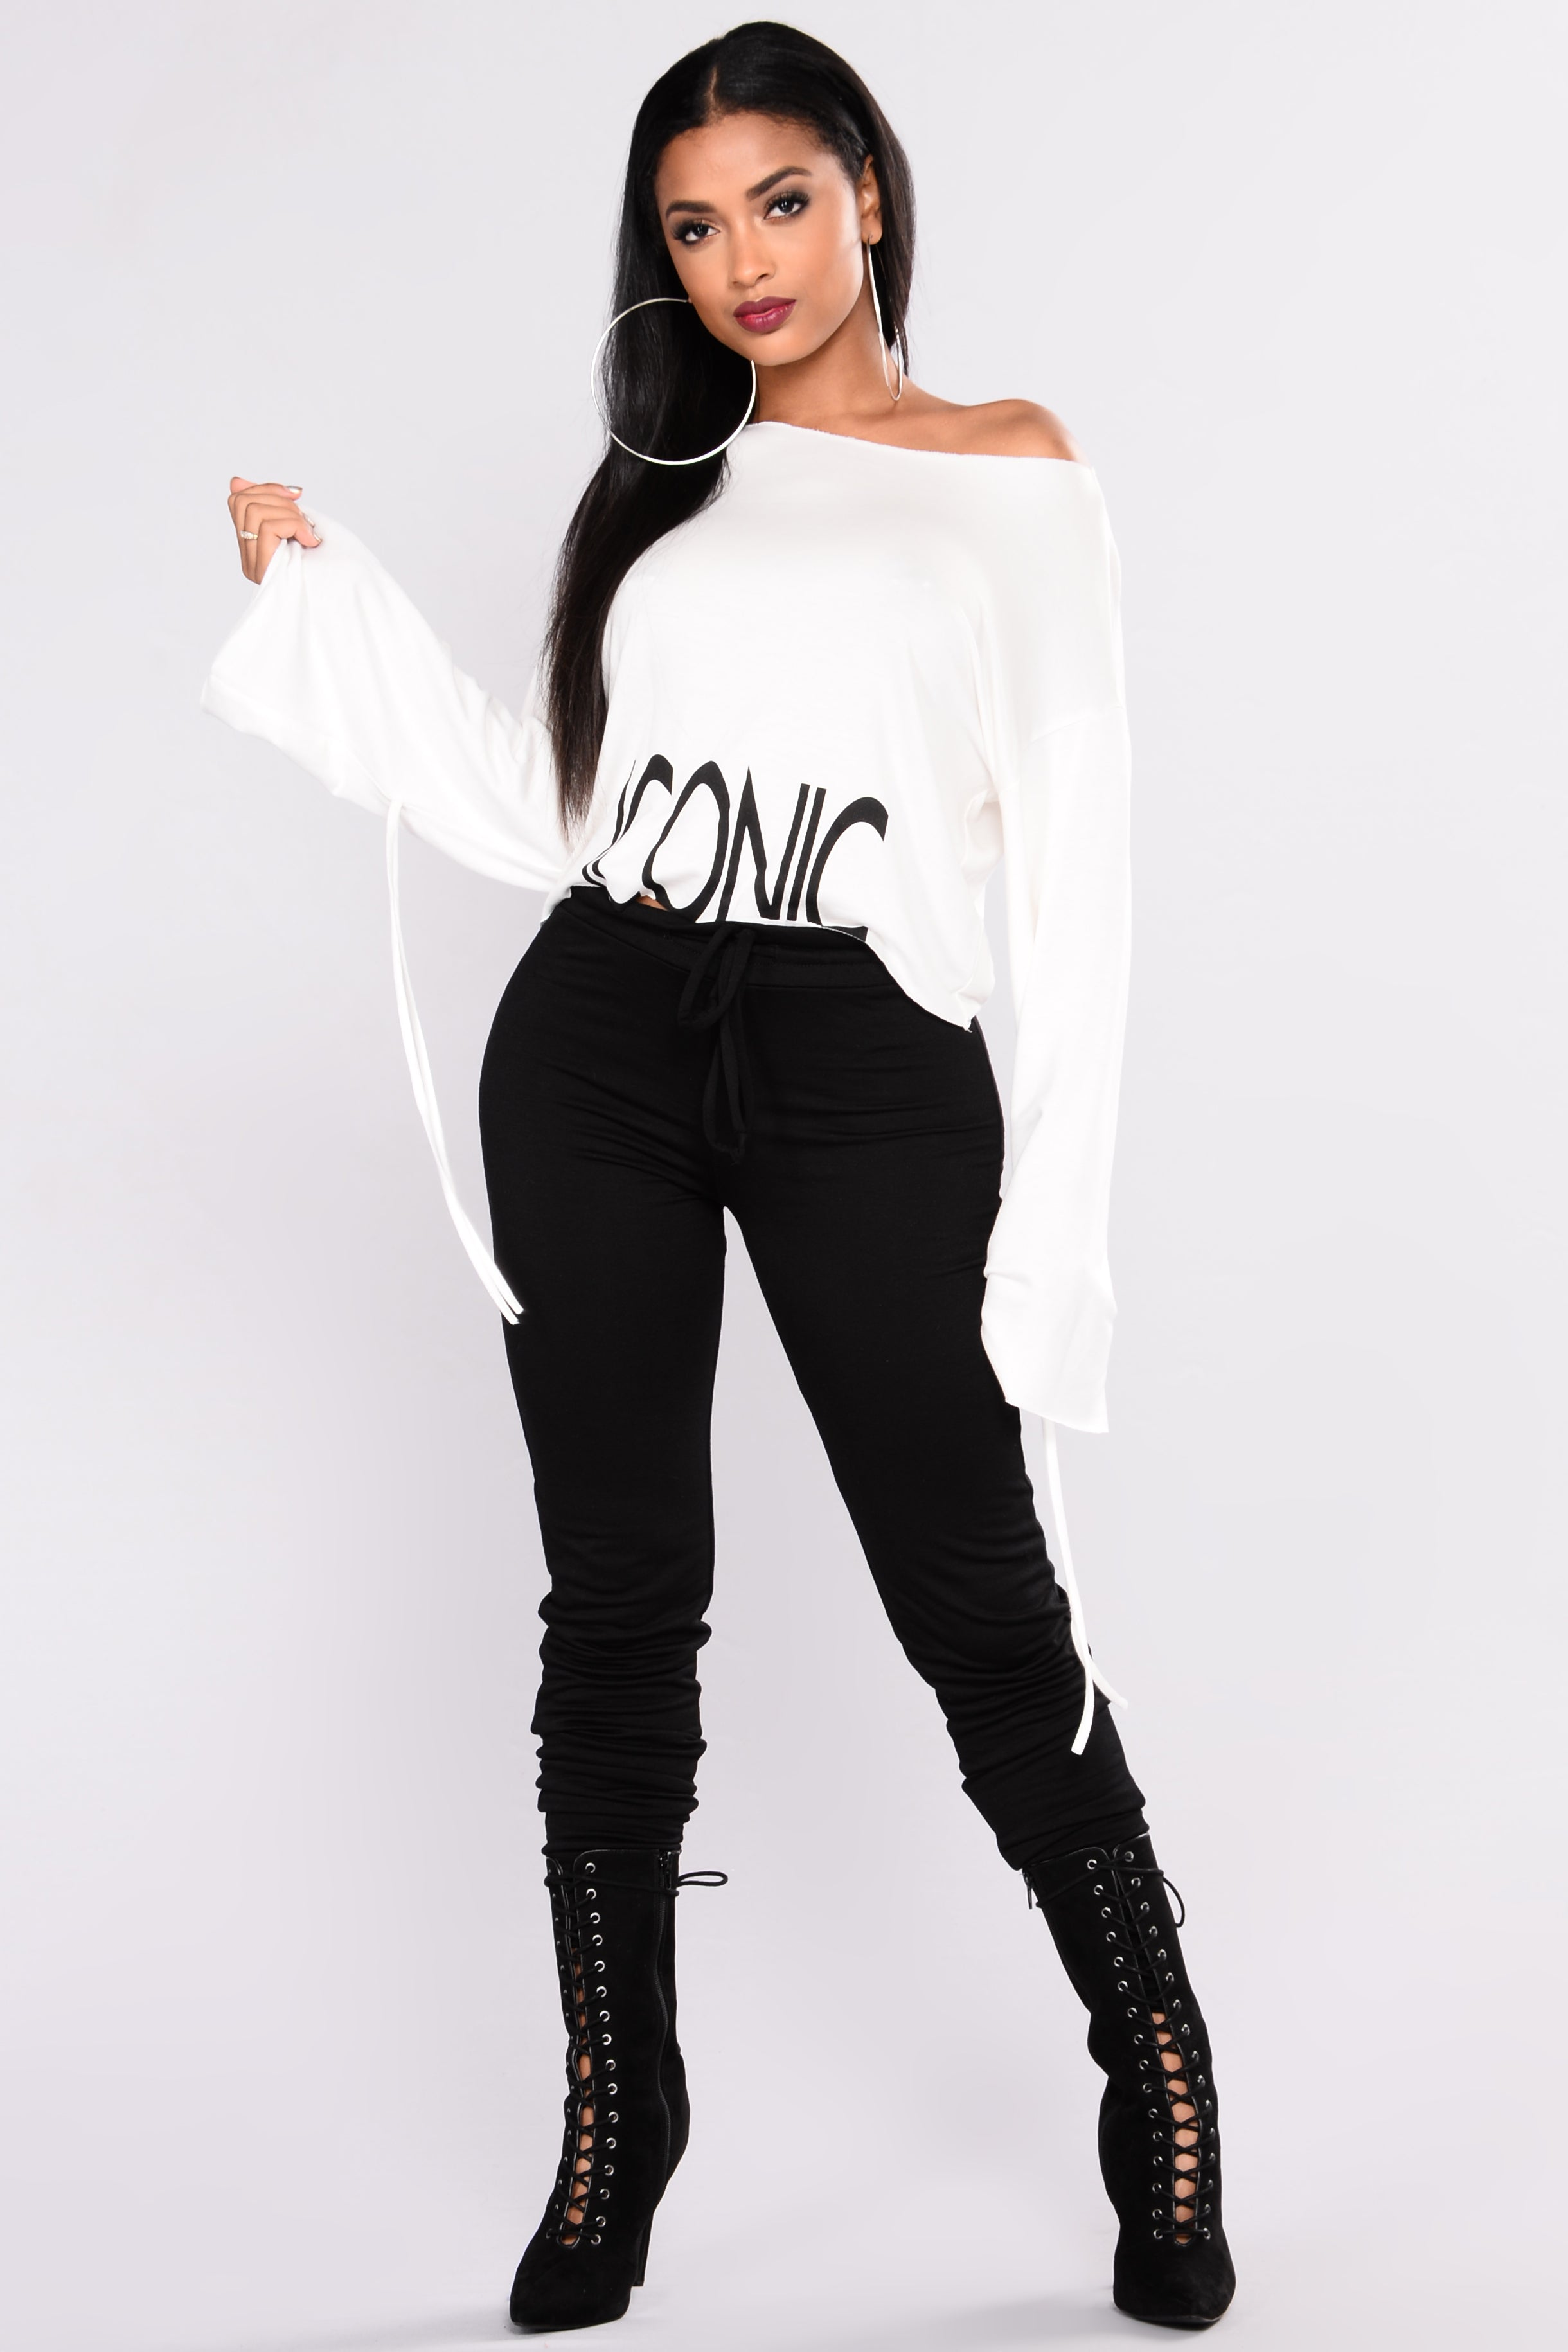 f2ffe56f73498 So Iconic Top - Ivory